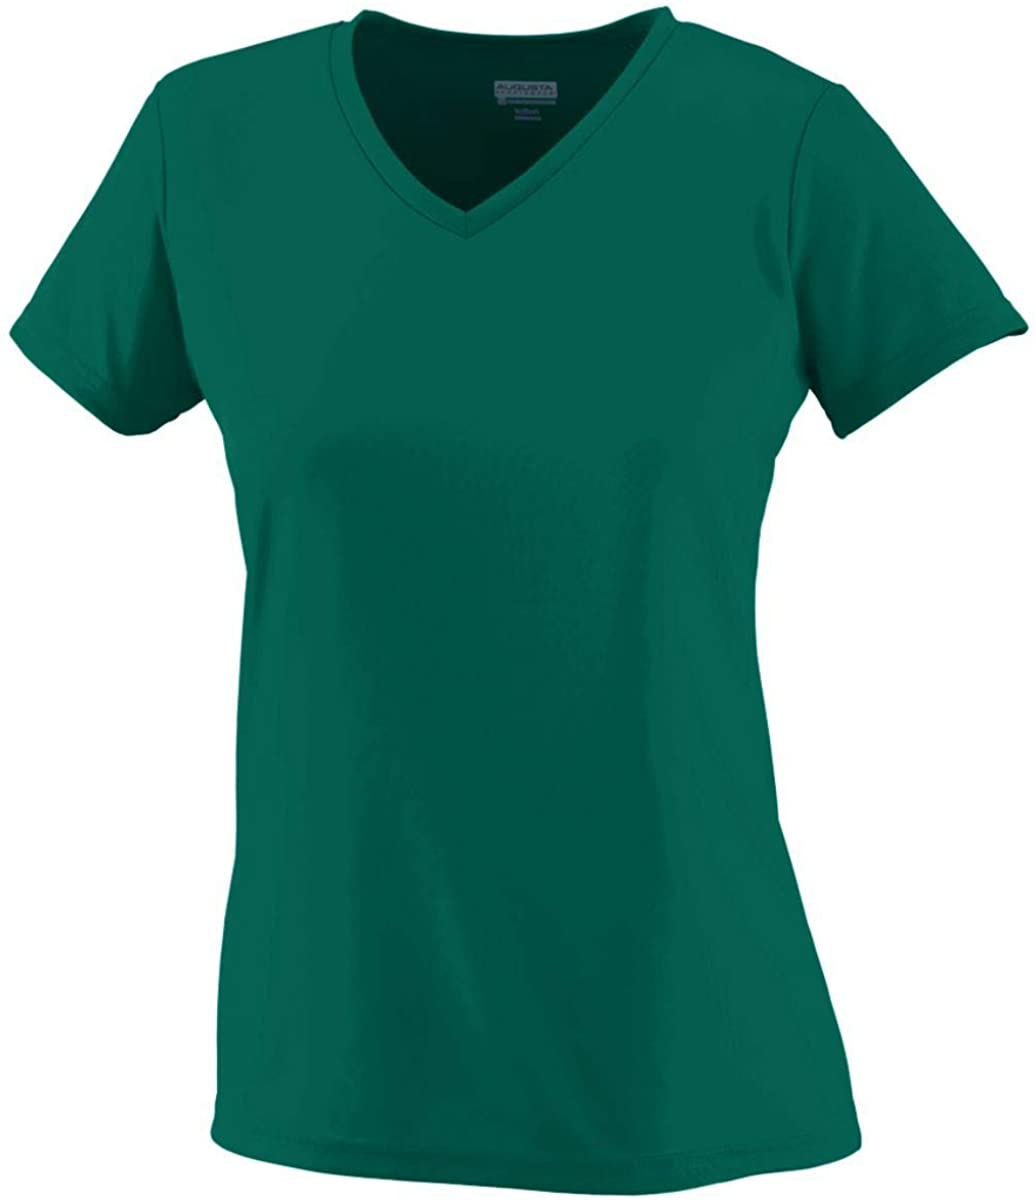 Augusta Sportswear Women's Wicking Tee Shirt